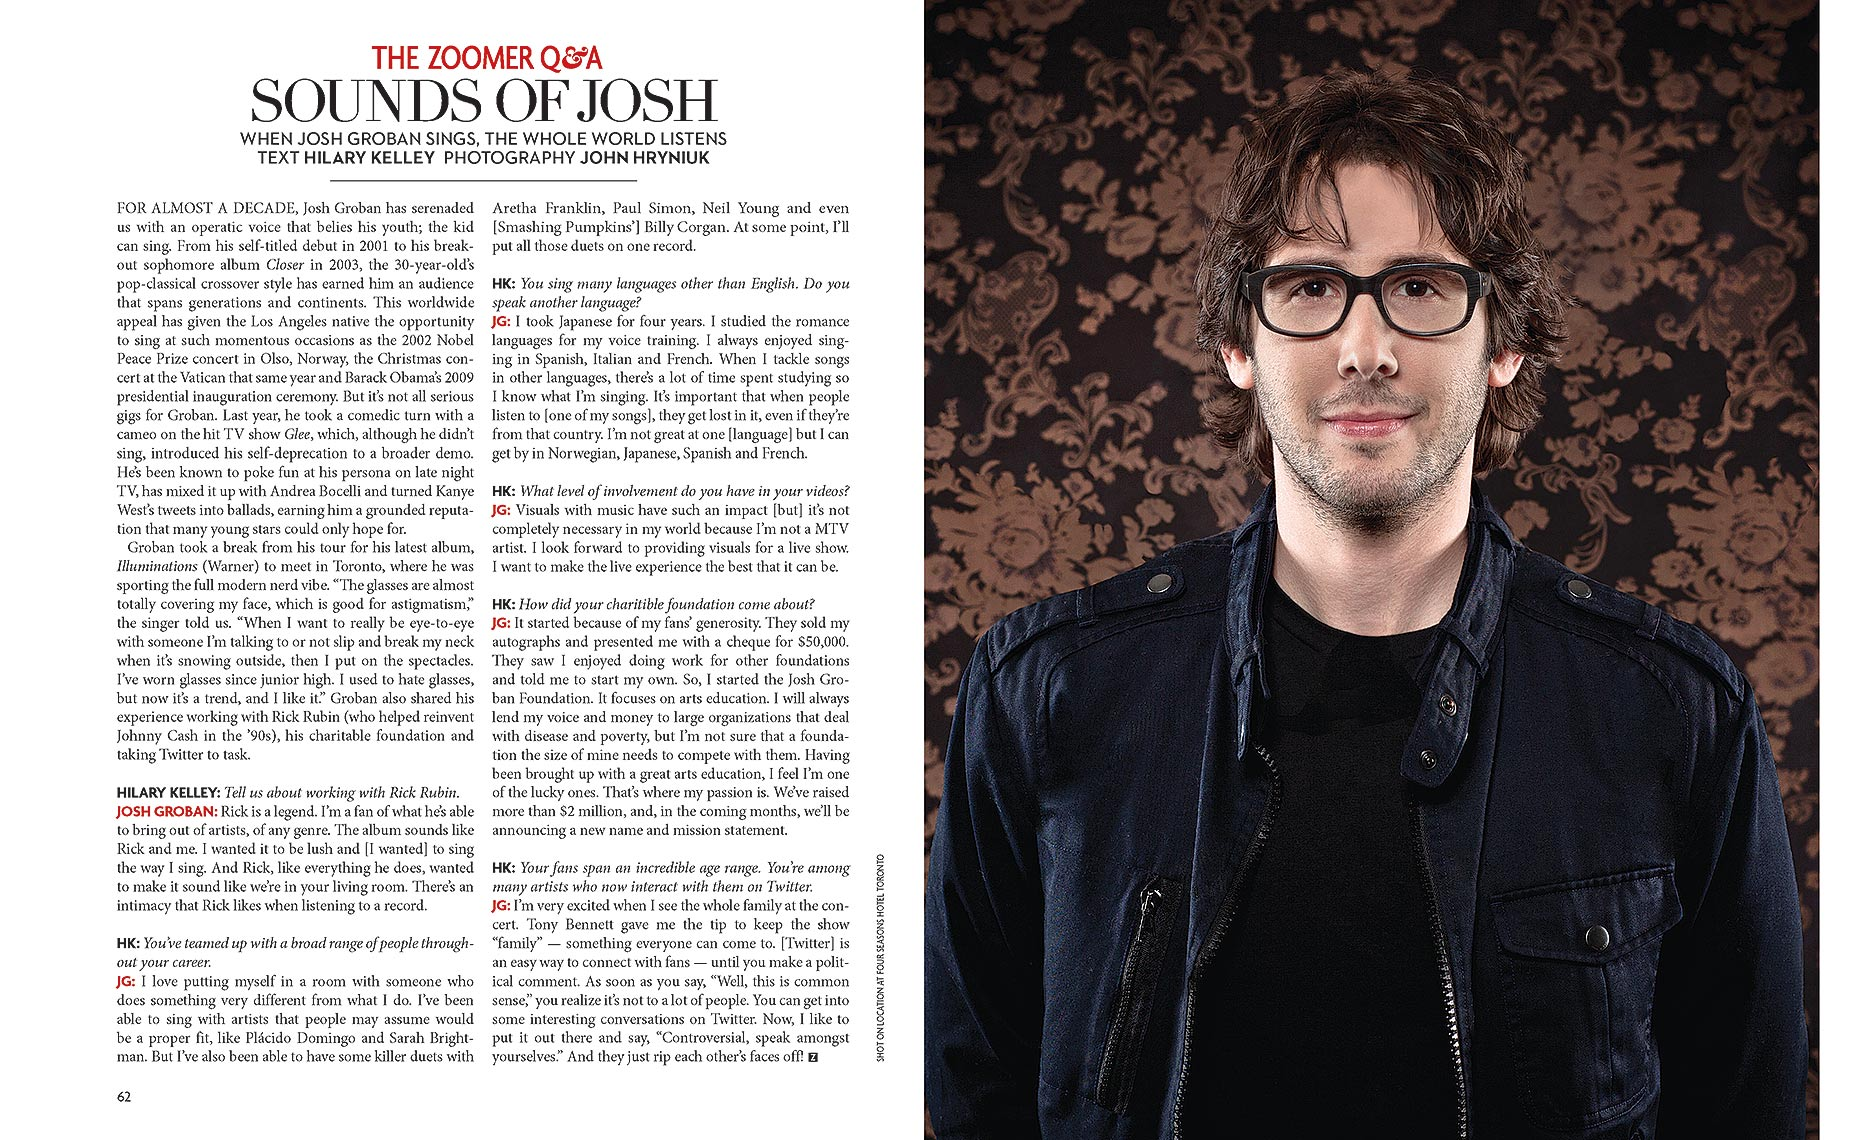 Singer Josh Groban for Zoomer Magazine in Toronto